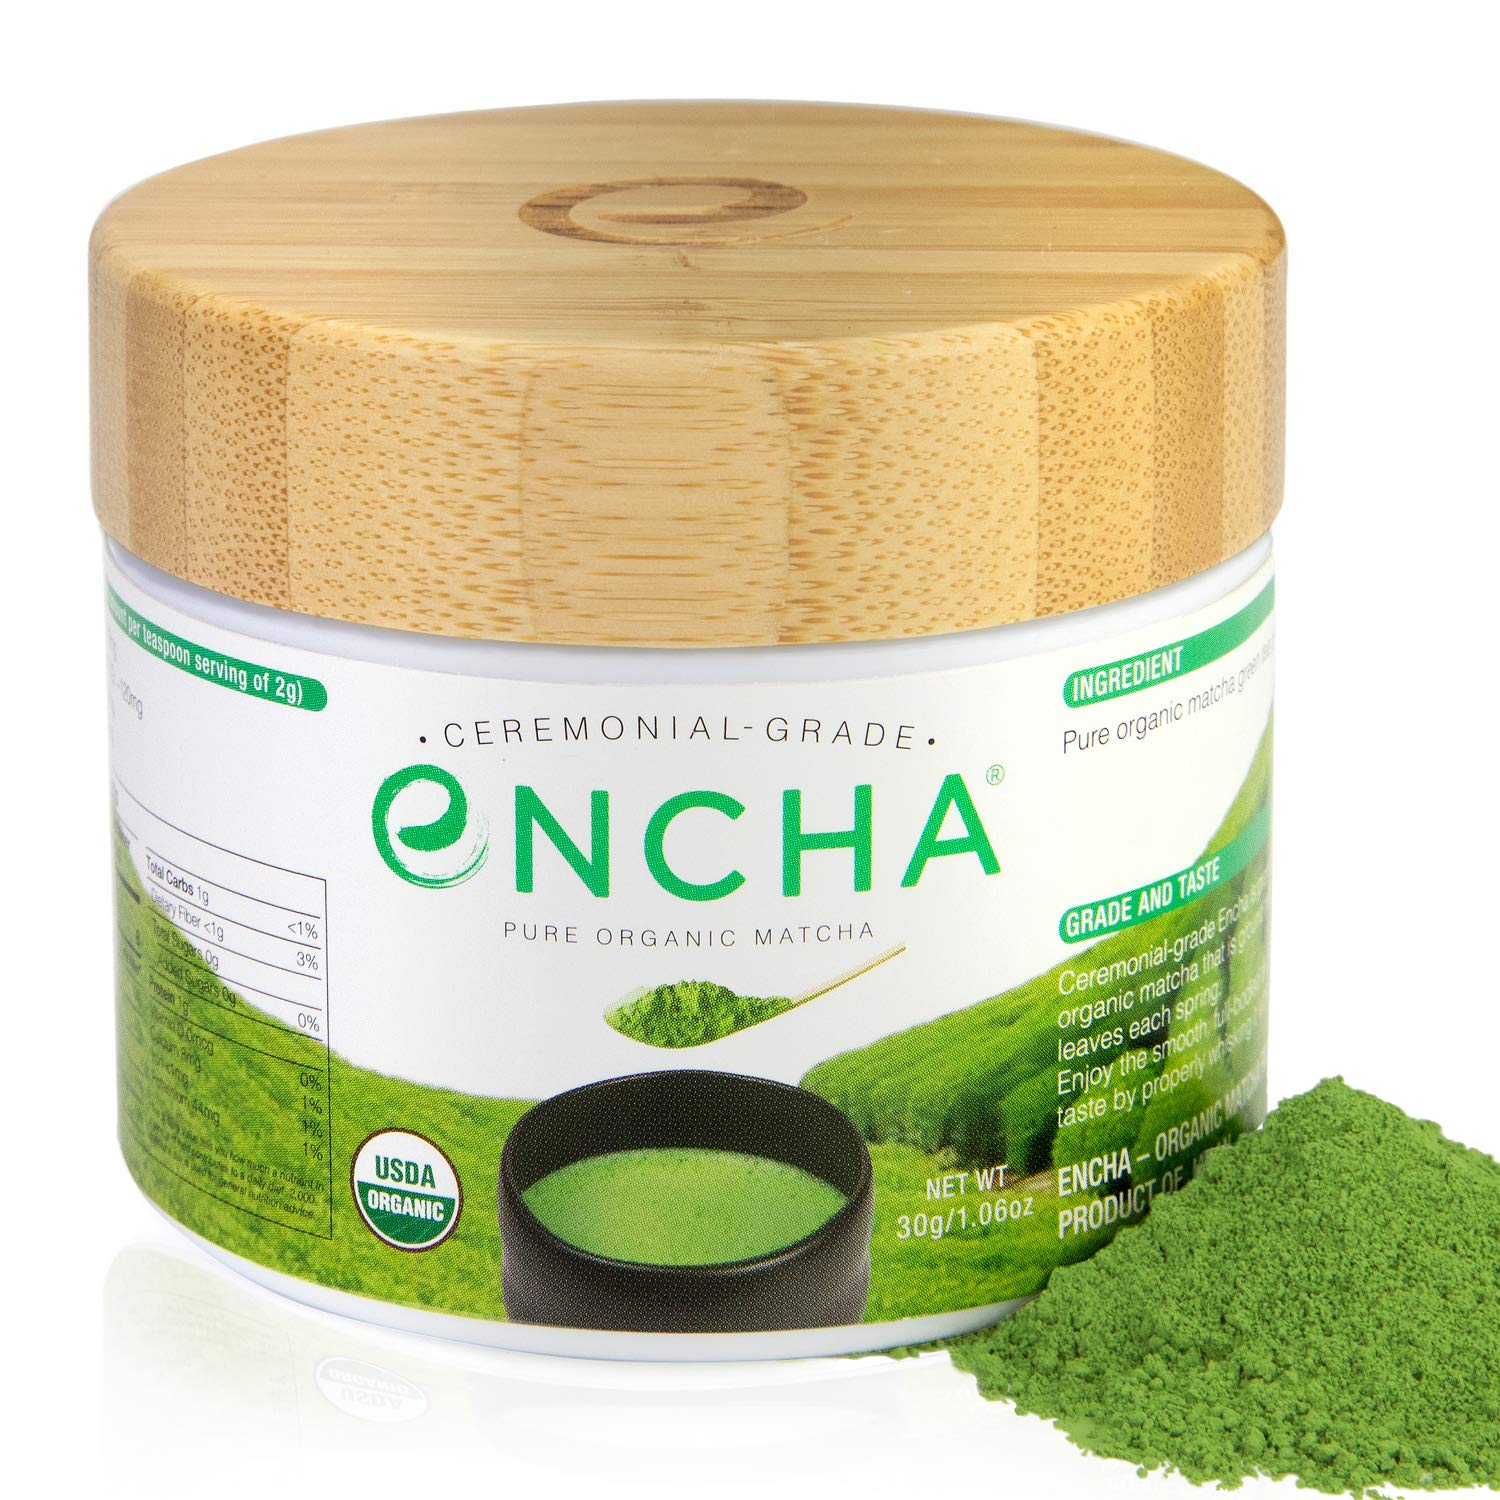 Encha Ceremonial Organic Matcha in Reusable Glass Jar (USDA Organic Certificate and Antioxidant Content Listed, Premium First Harvest Directly from Farm in Uji, Japan, 30g/1.06oz in Glass Jar)